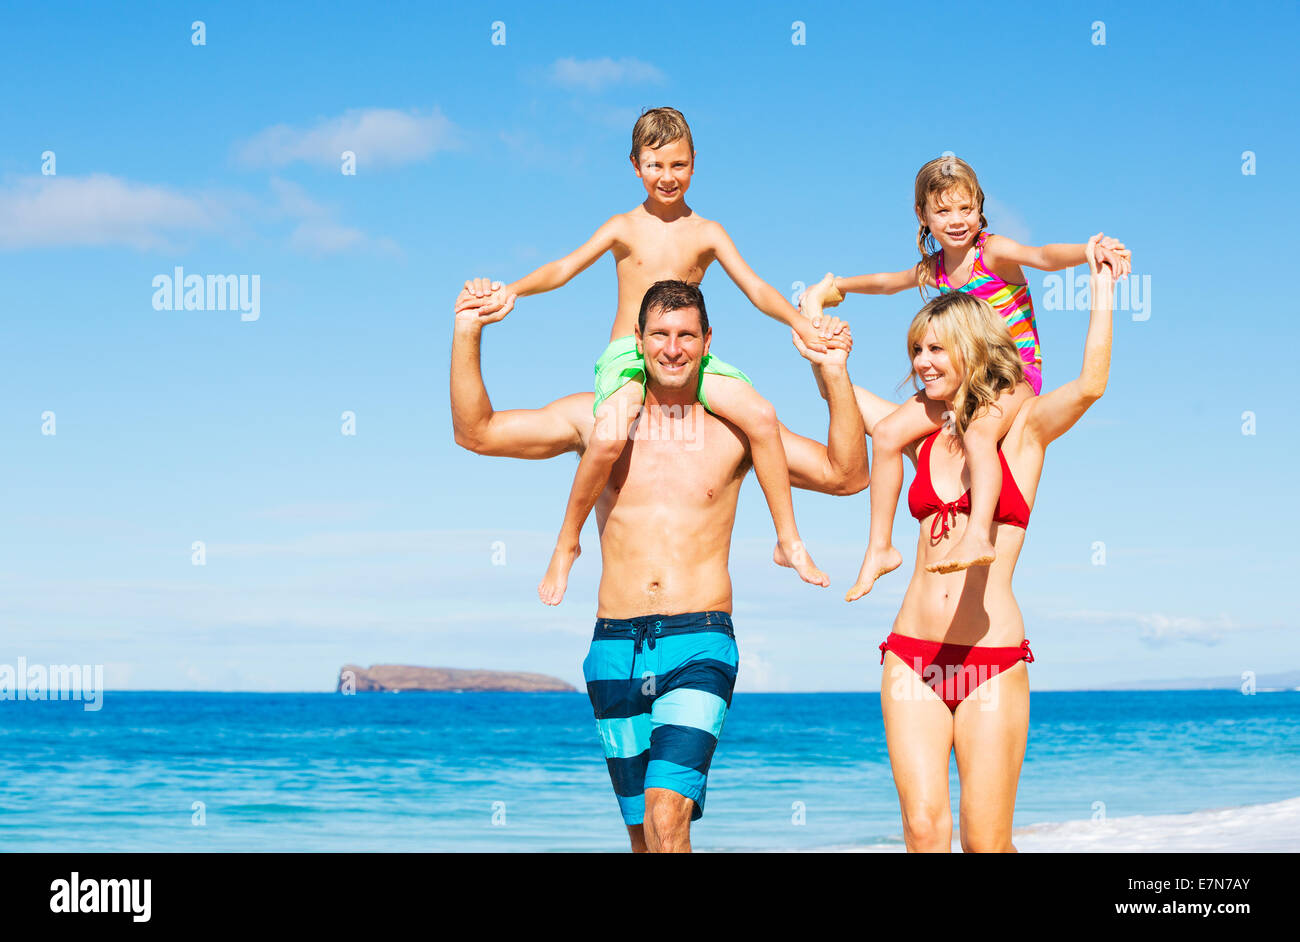 Happy Family of Four Having Fun on the Beach - Stock Image